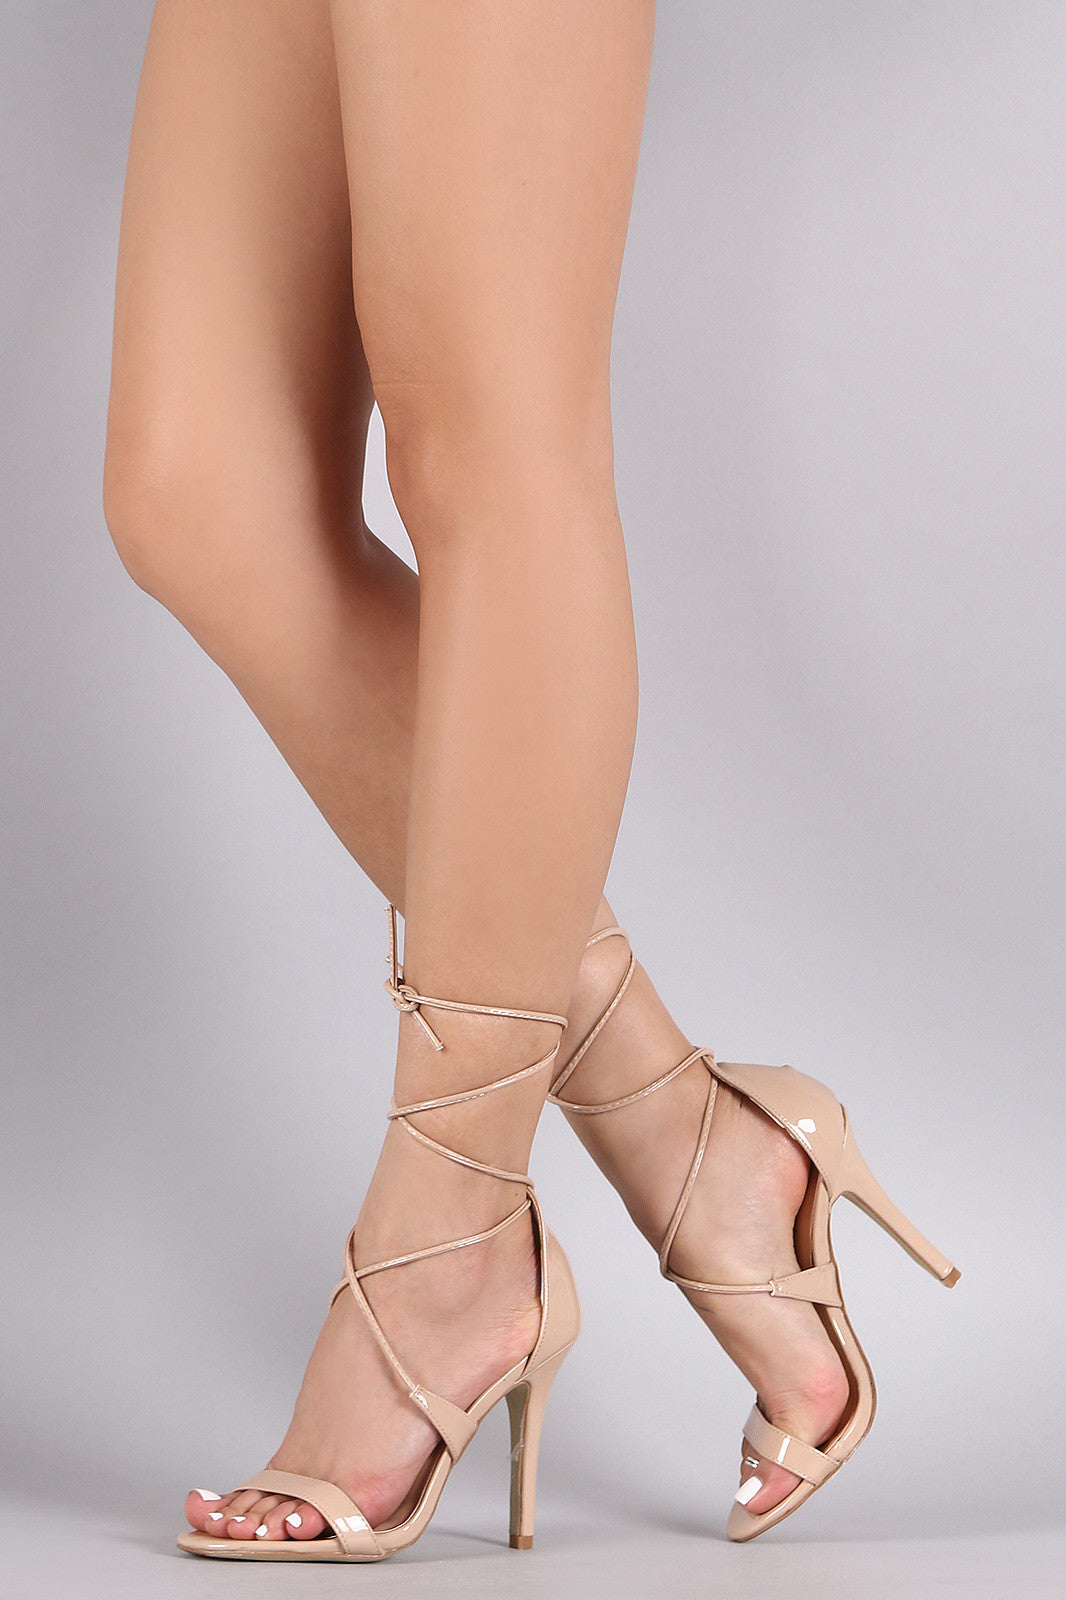 Patent Open Toe Lace-Up Stiletto Heel - Thick 'N' Curvy Shop - 6